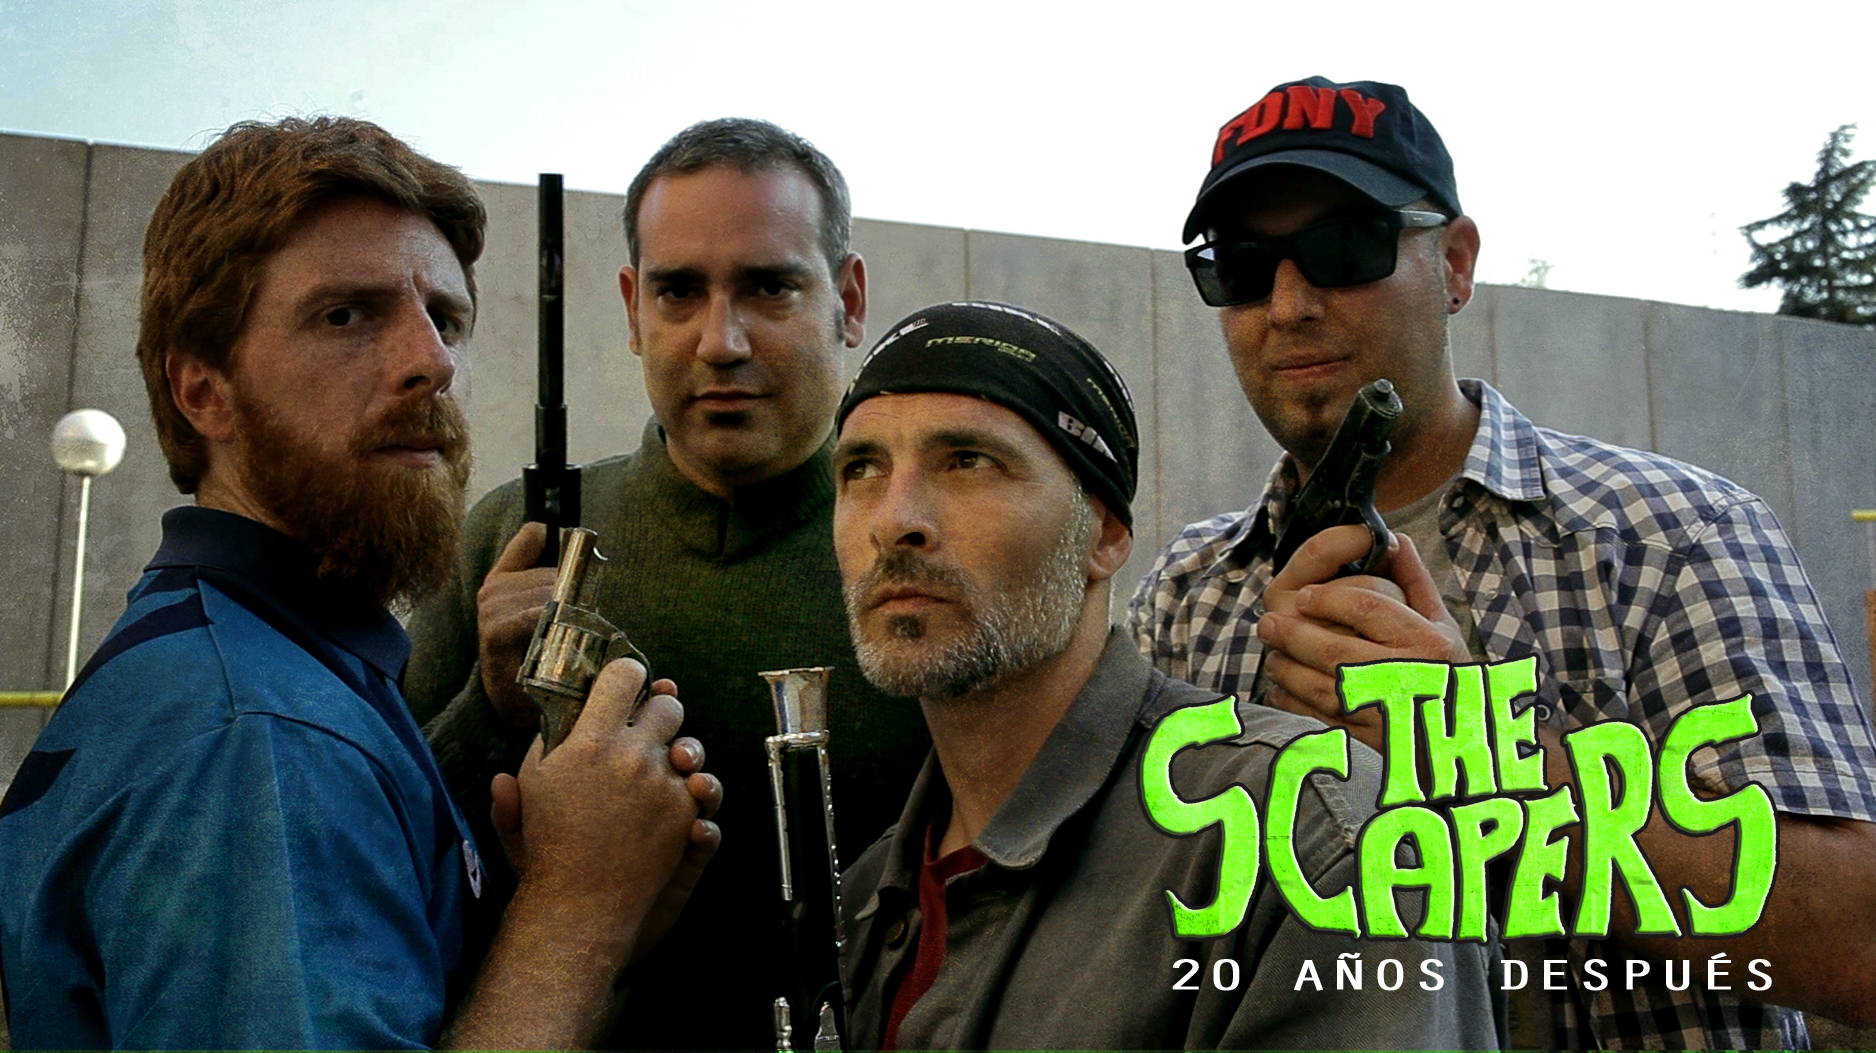 The Scapers: 20 años de cine y amistad